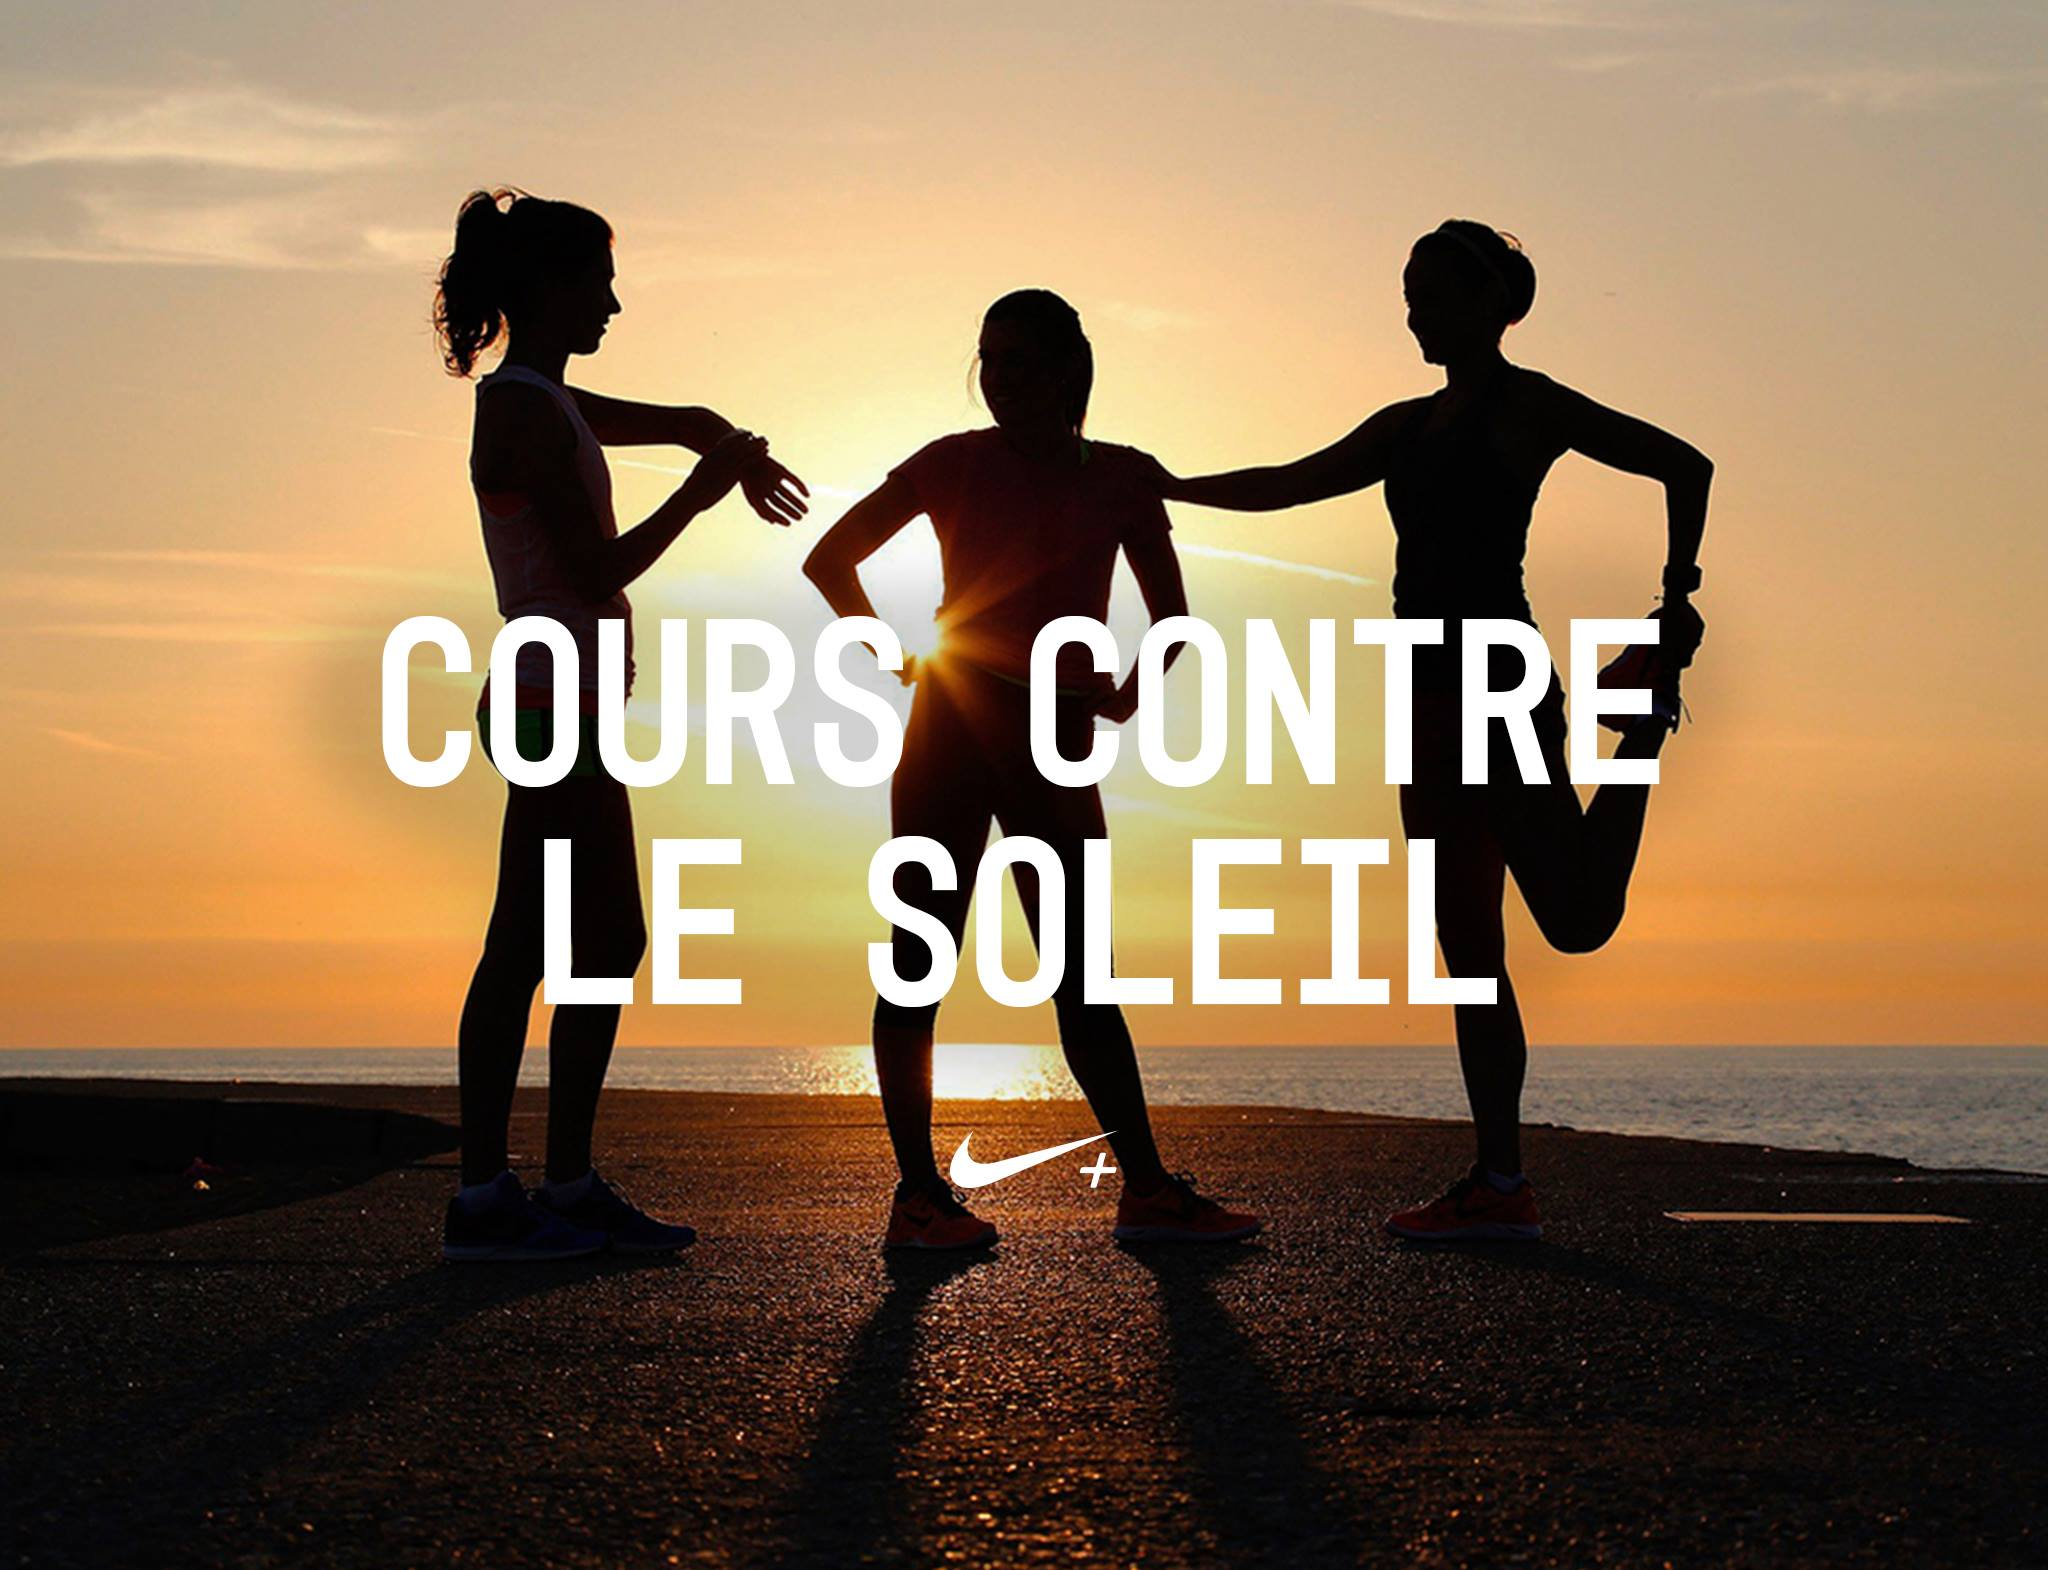 Nike Cours contre le soleil running